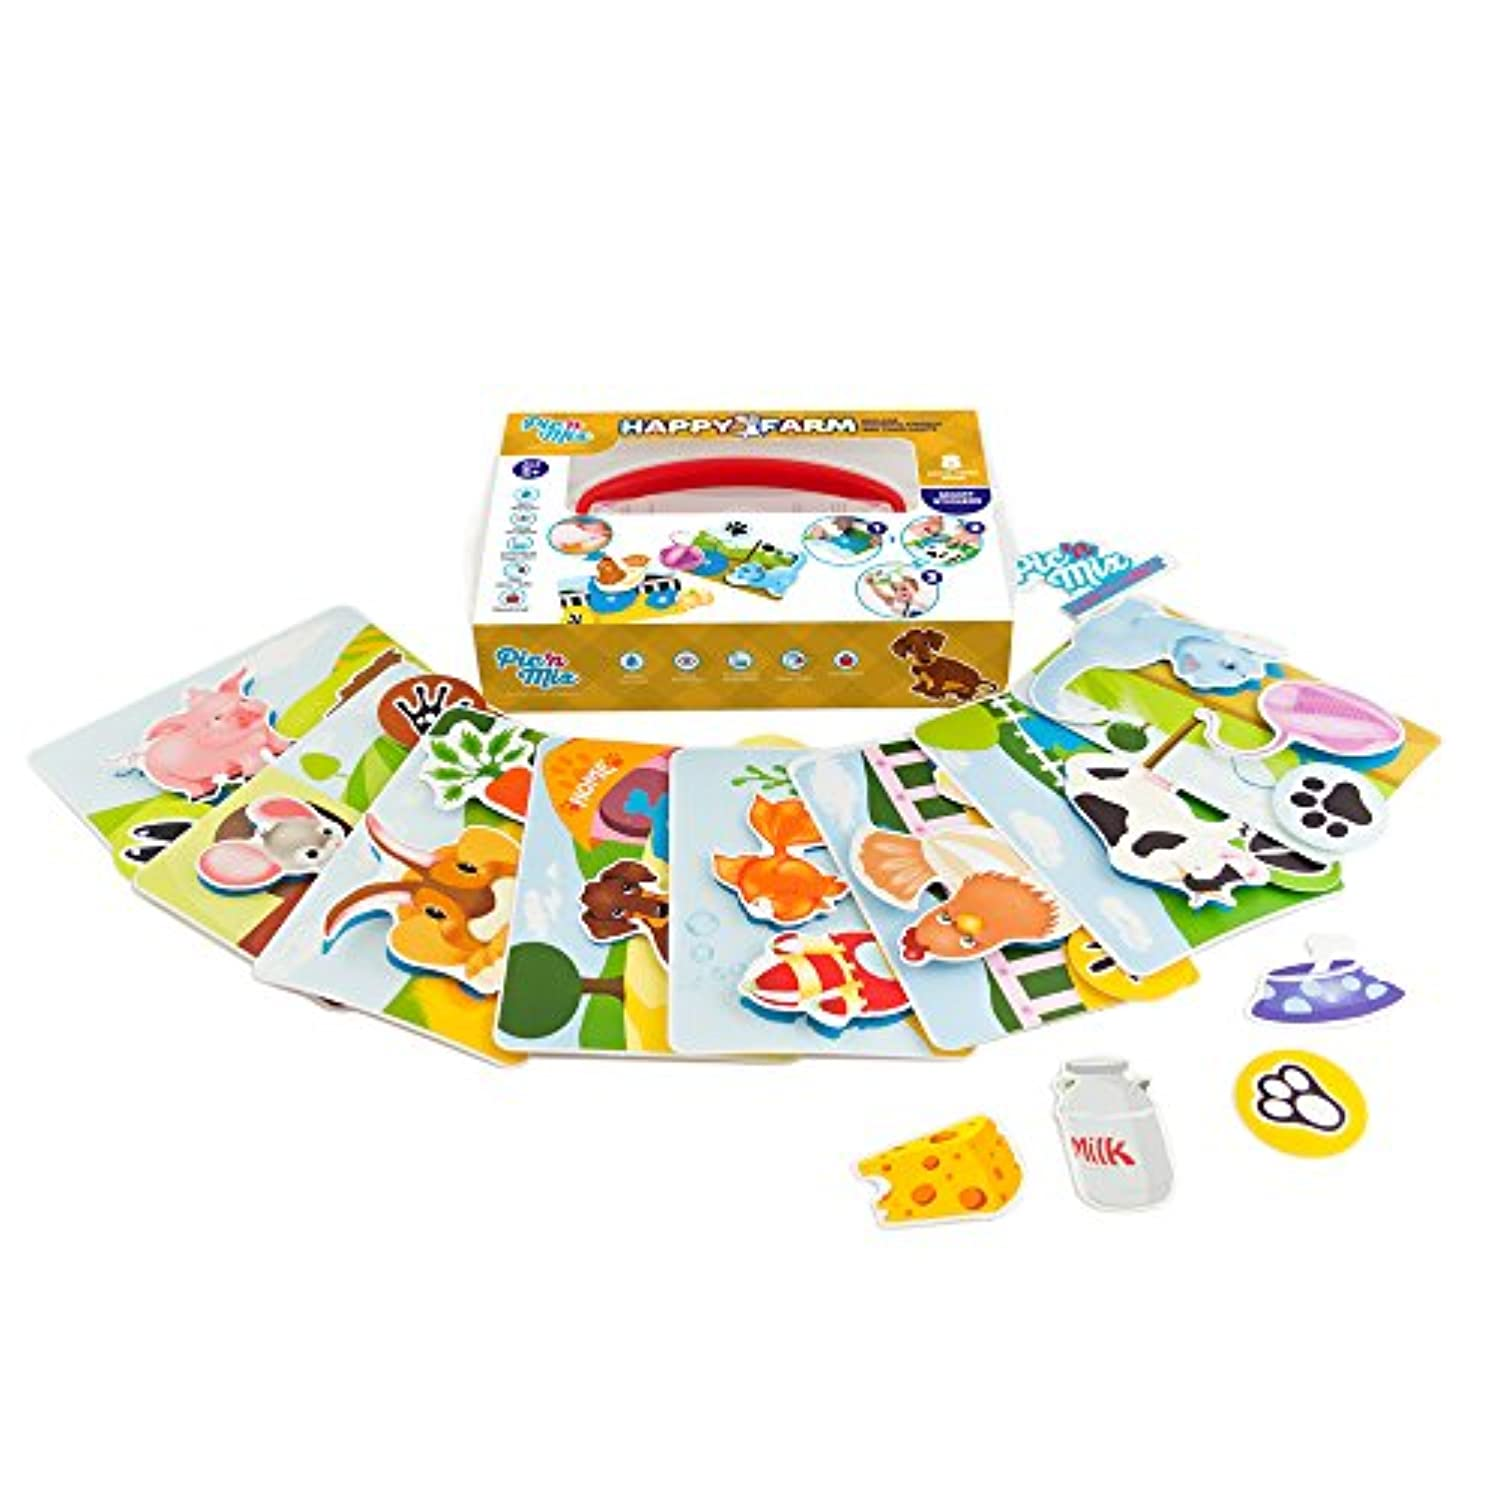 (Happy Farm) - Picnmix Happy Farm Educational and Learning Puzzle Game and Toy for 3 year olds to 7 year olds